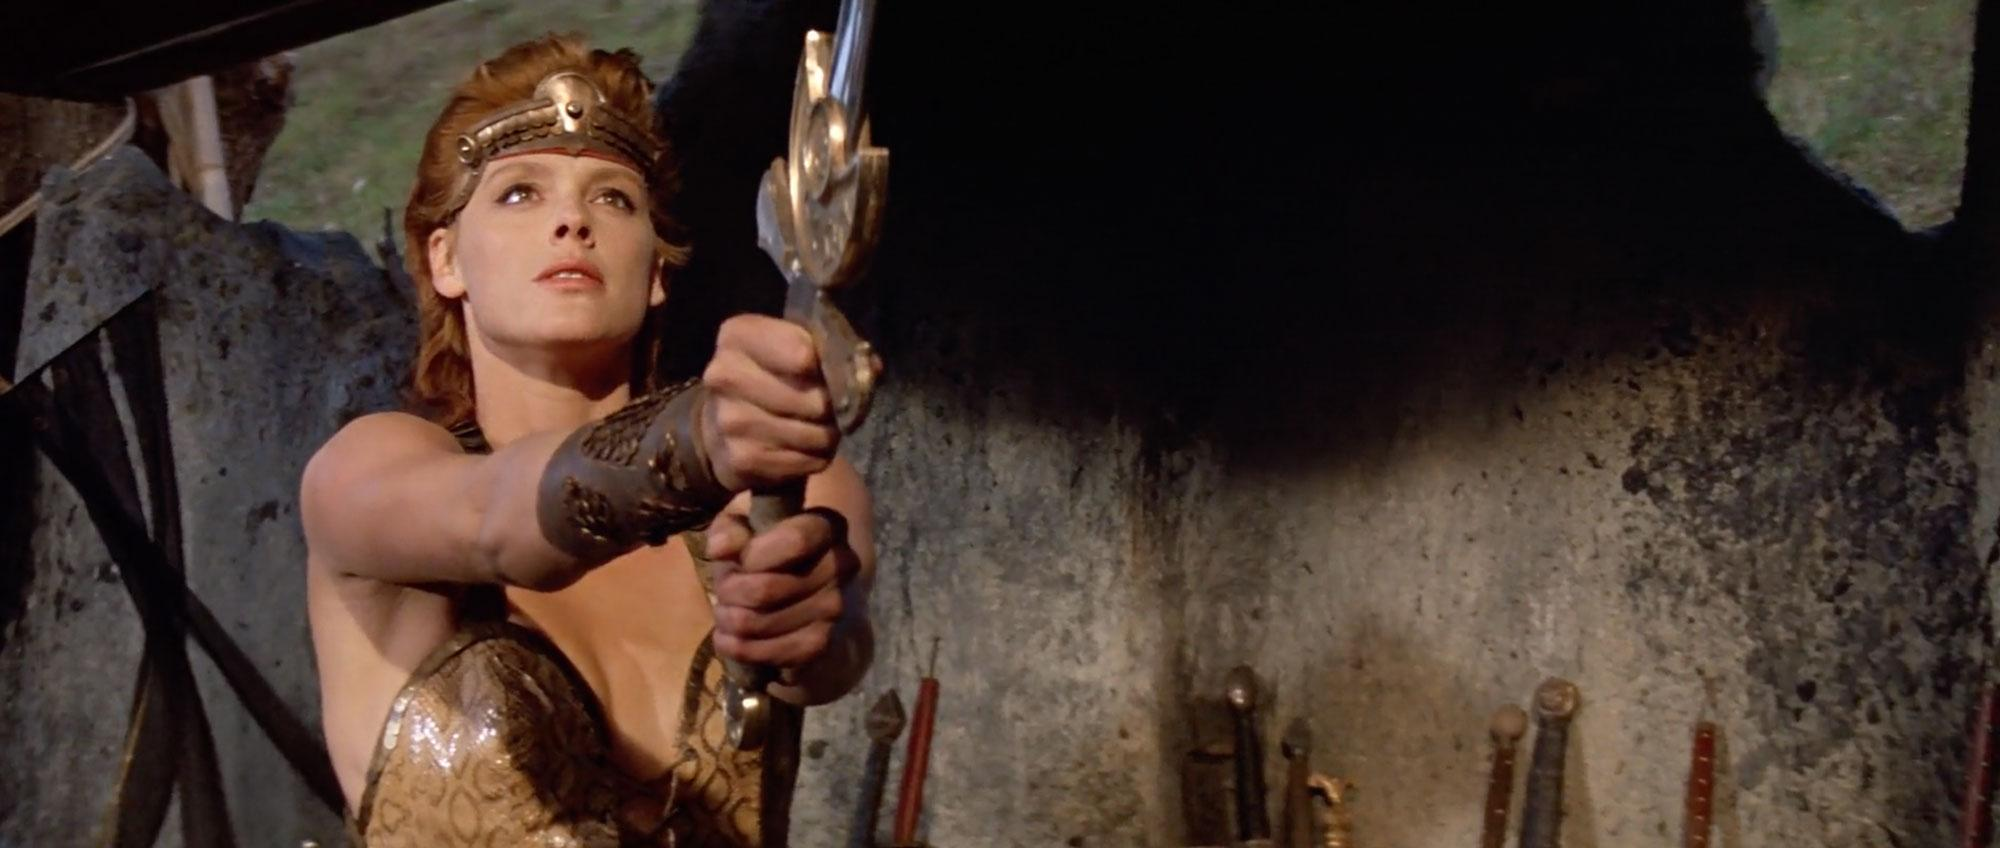 Brigitte Nielsen in Red Sonja (1985)